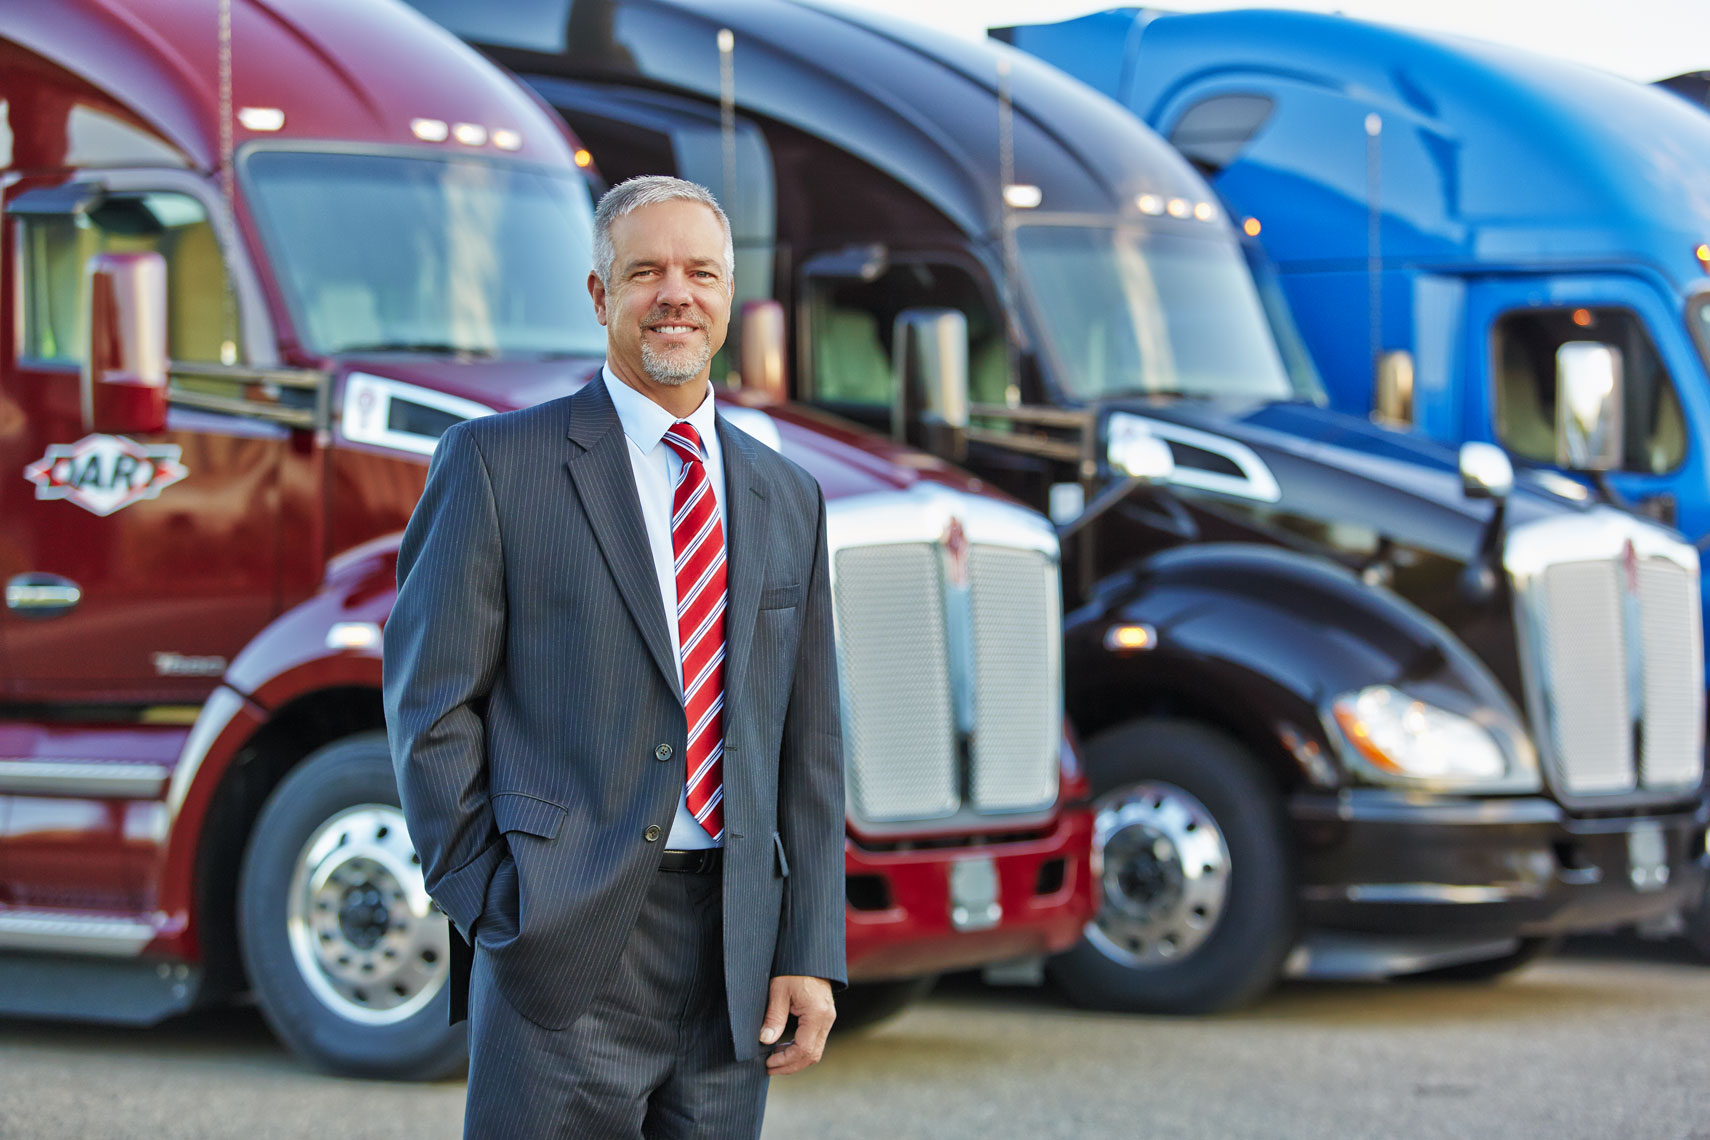 Business exec/colorfull semi trucks/business location photography